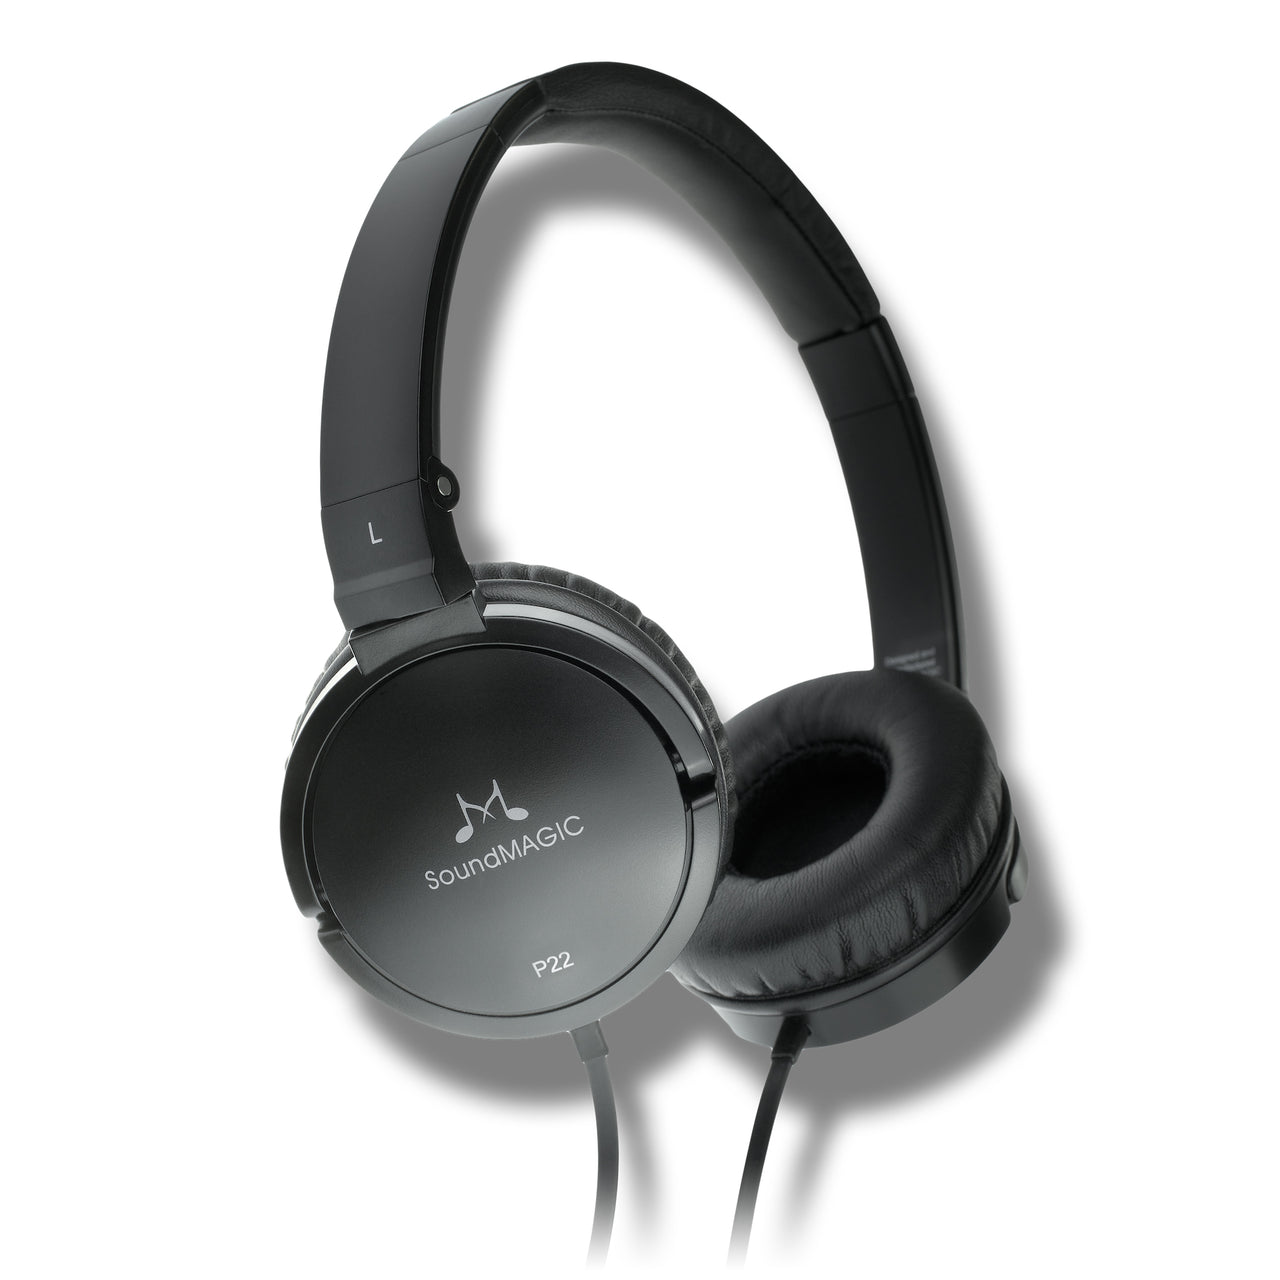 SoundMAGIC P22 Portable Headphones - Black - SoundMAGICheadphones.com